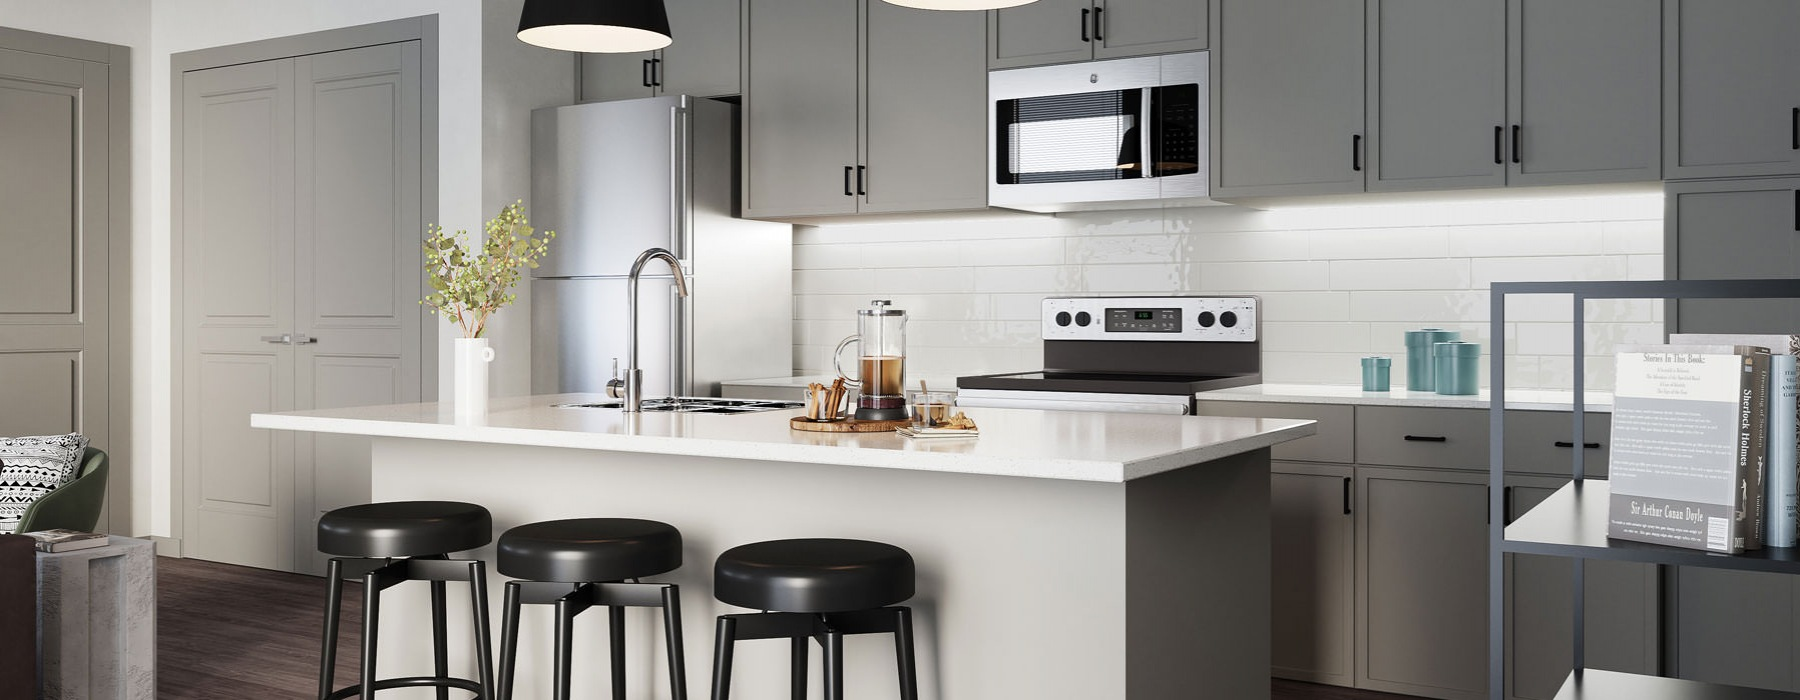 Kitchen features modern grey cabinets, black pending lights and white countertops